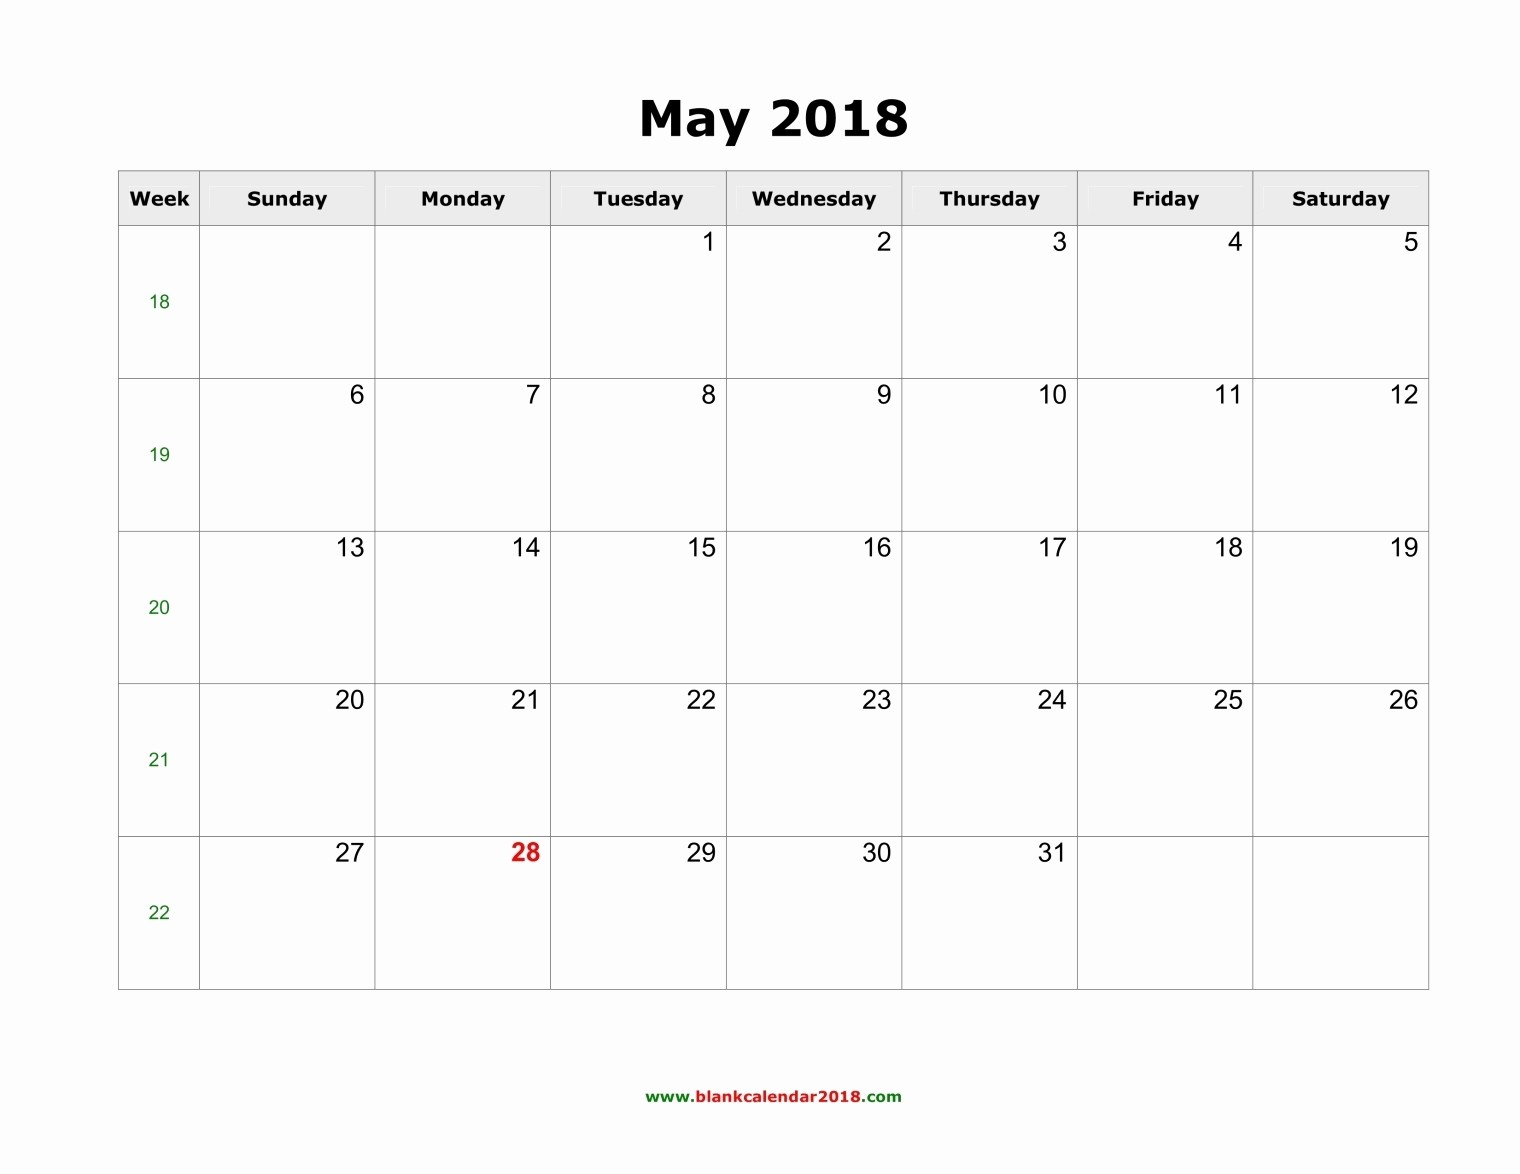 Blank May 2018 Calendar Printable Unique Blank Calendar May 2018 Landscape